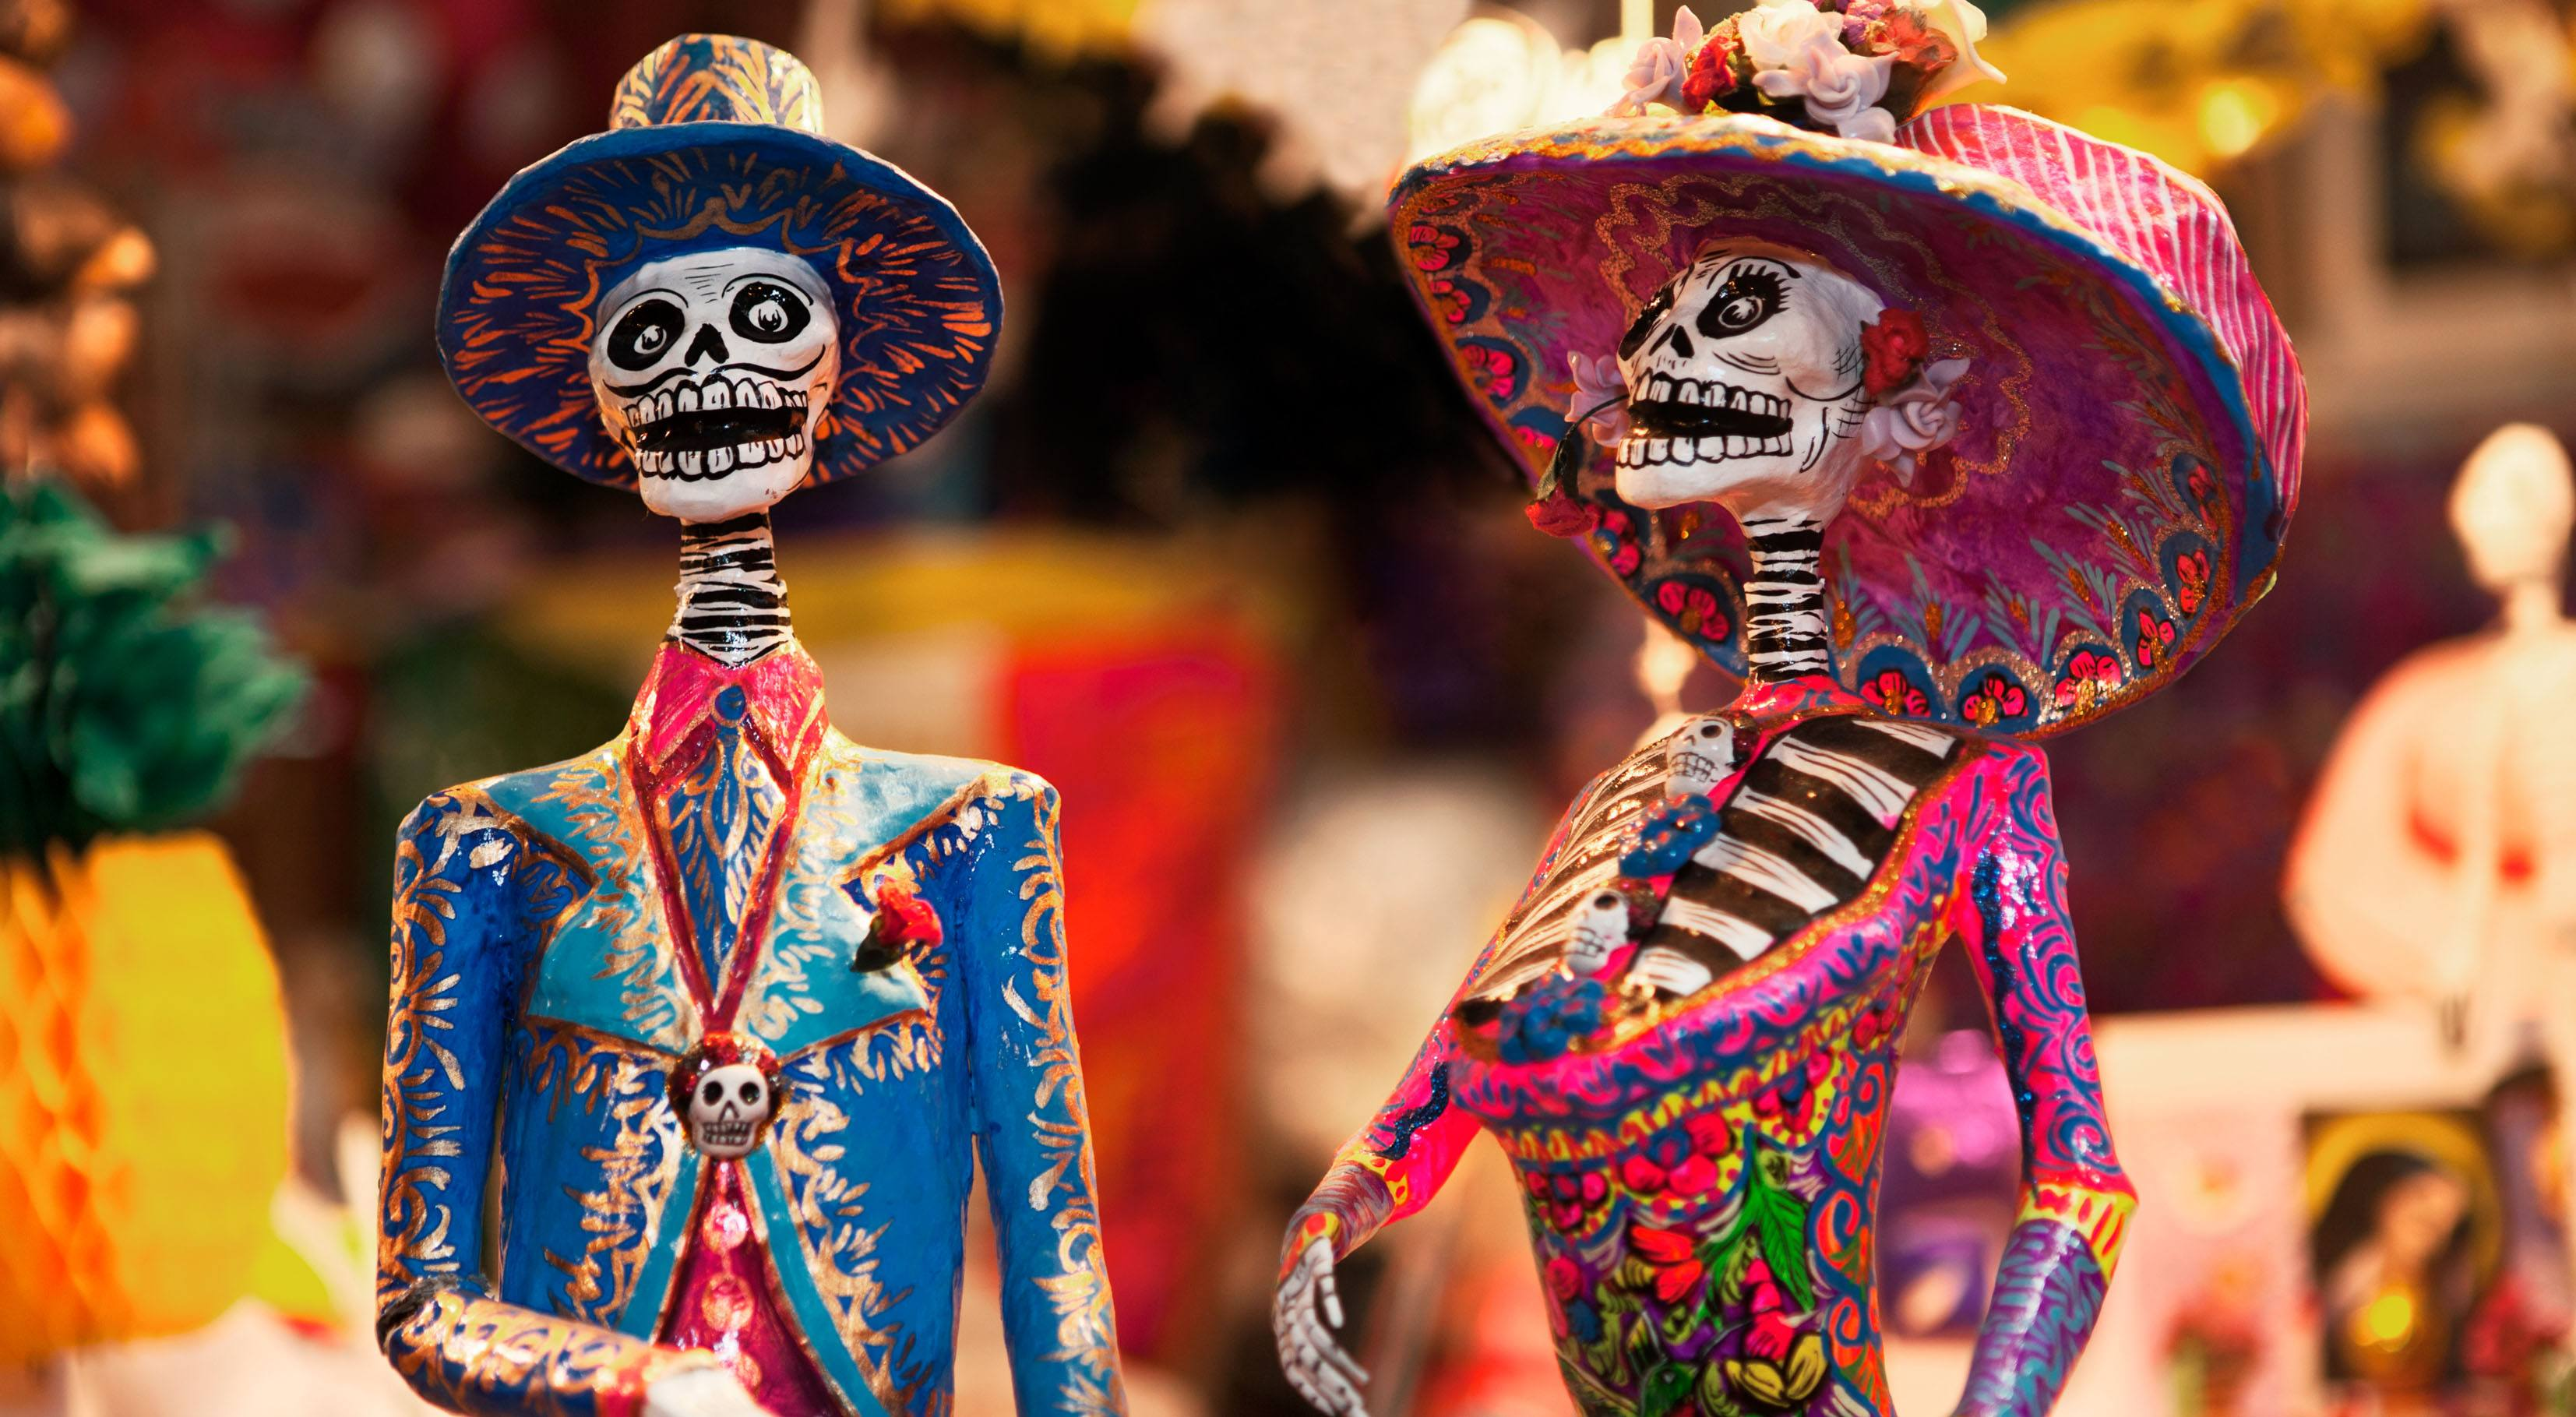 Copy of day of the dead figurines in mercado2